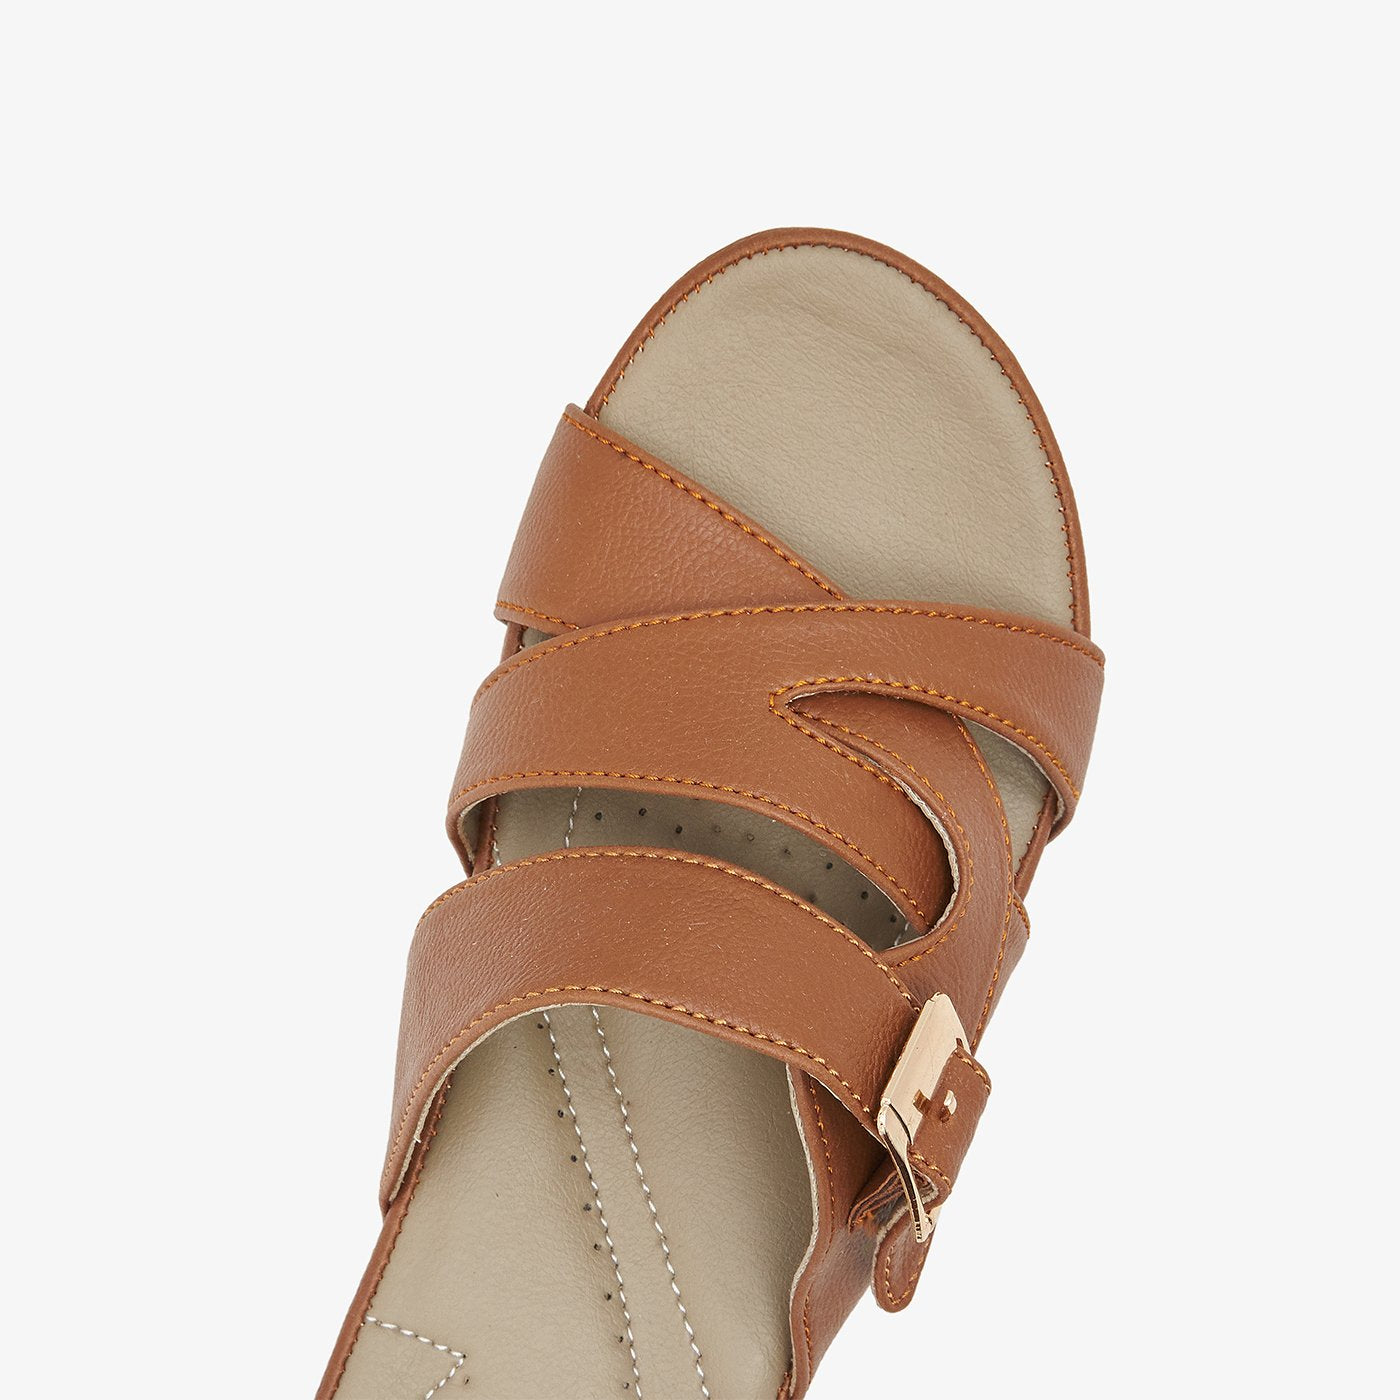 Buckled Ladies Chappals